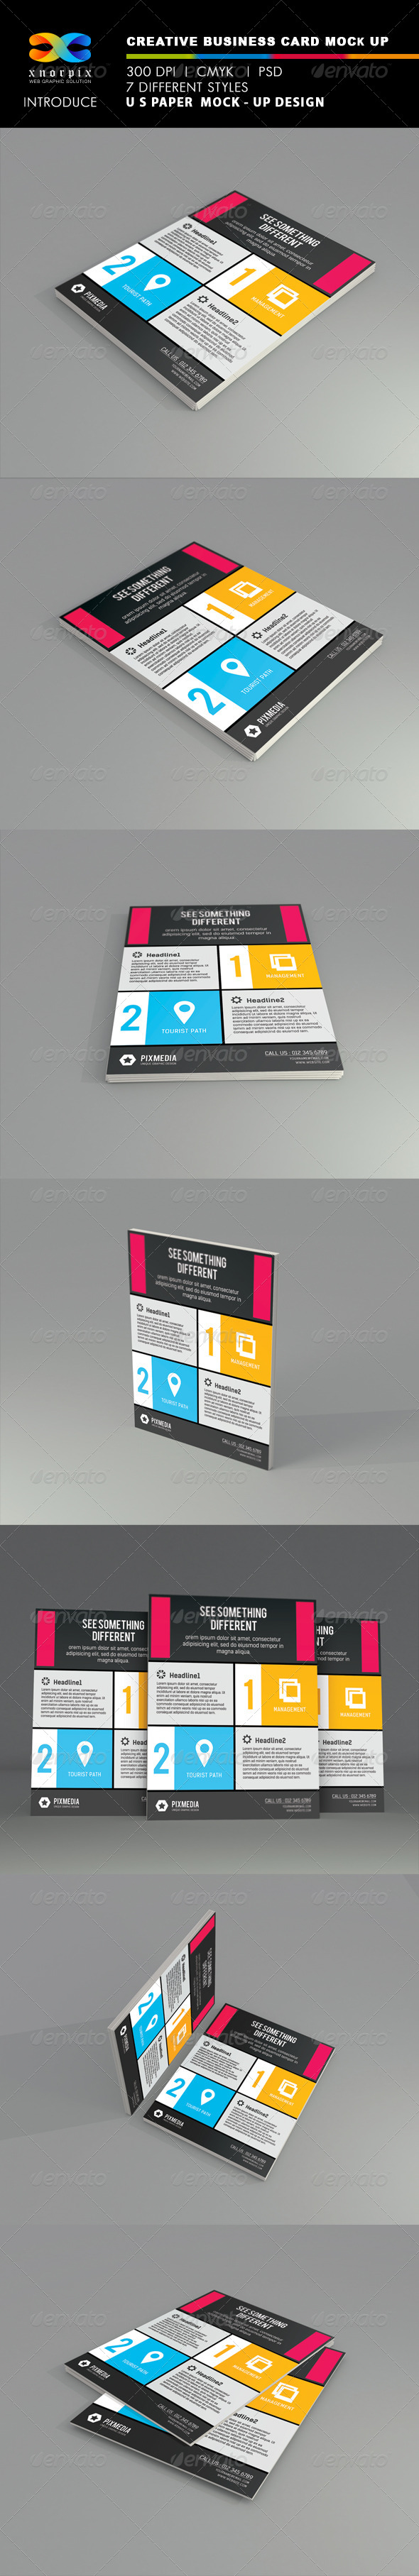 U S Paper Mock-up - Flyers Print